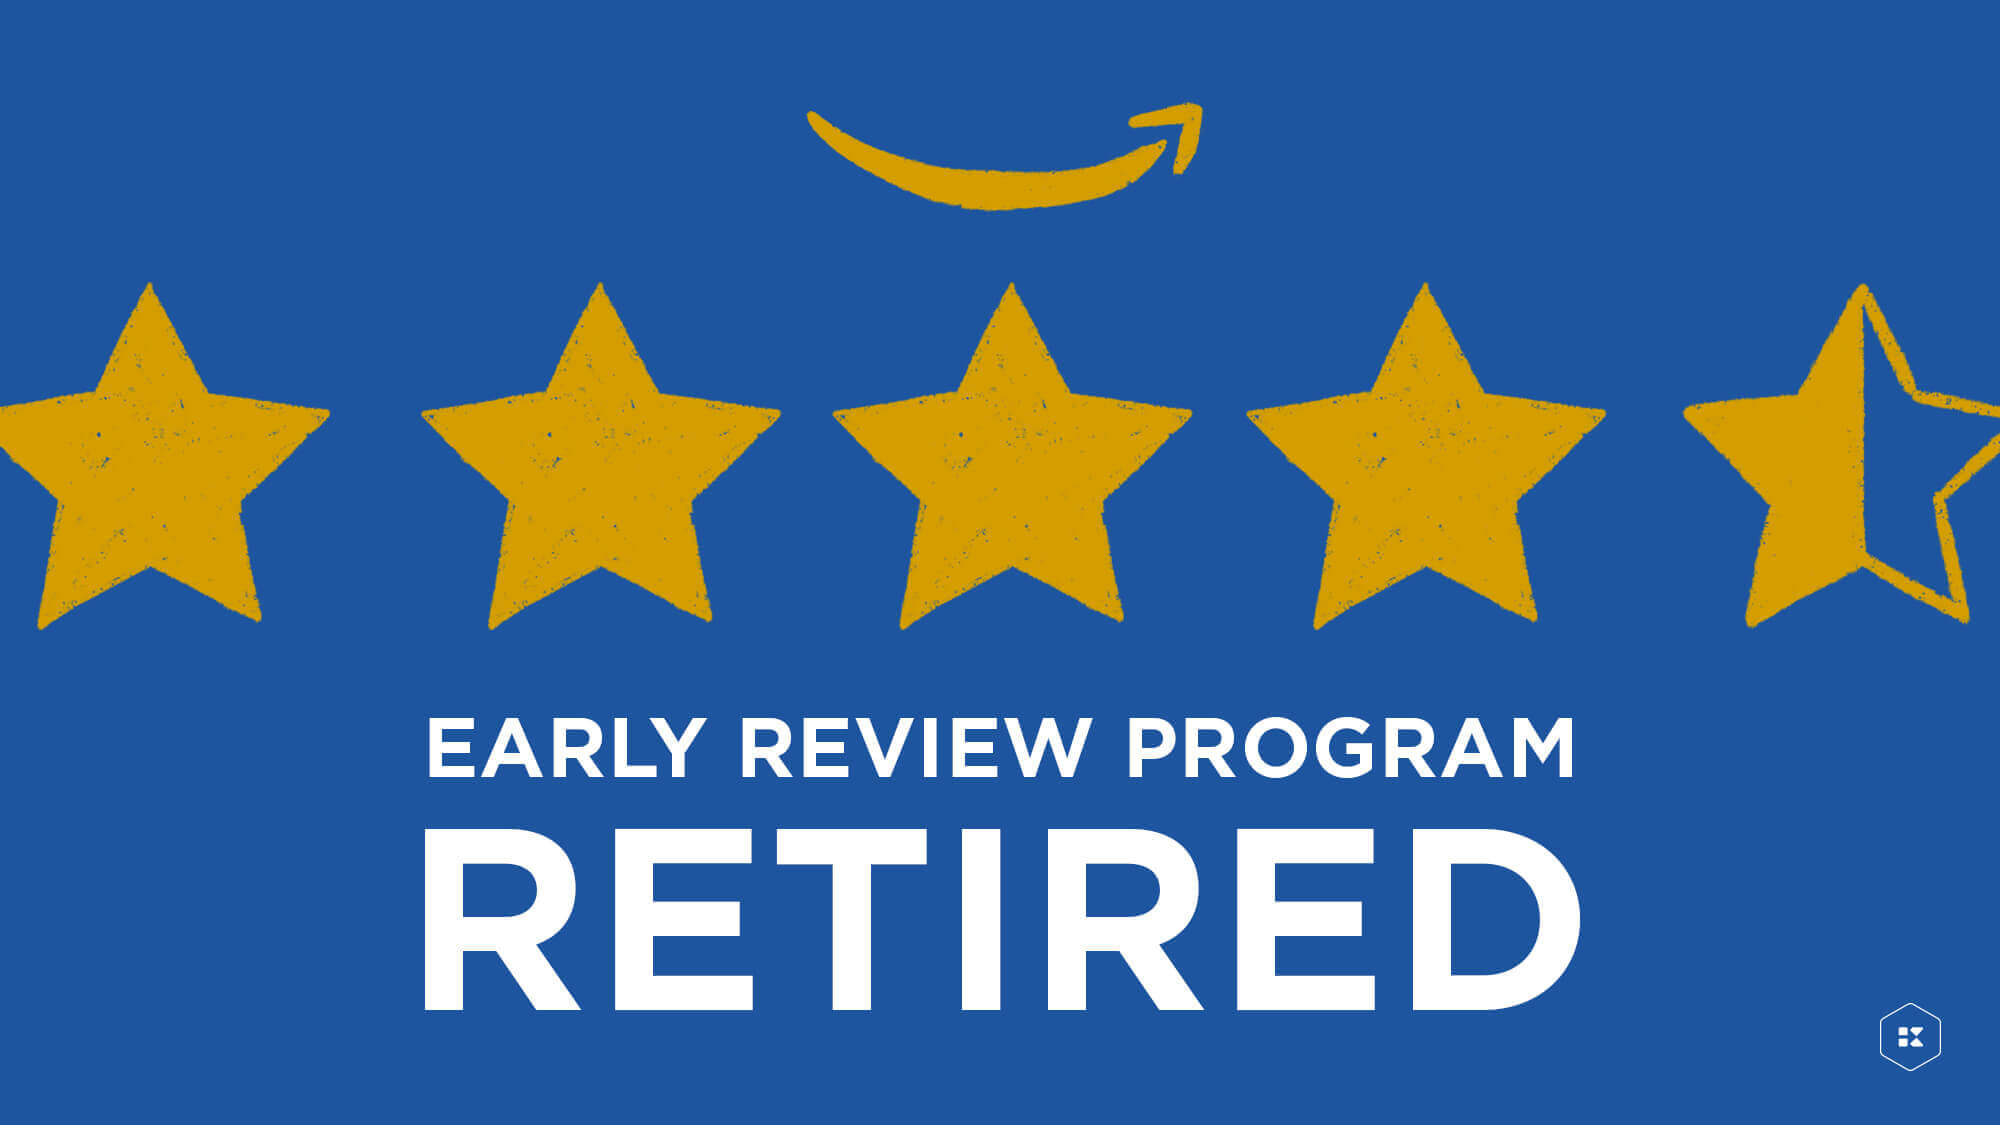 Amazon Ends Early Reviewer Program: Amazon Early Reviewer Program Retiring in April 2021